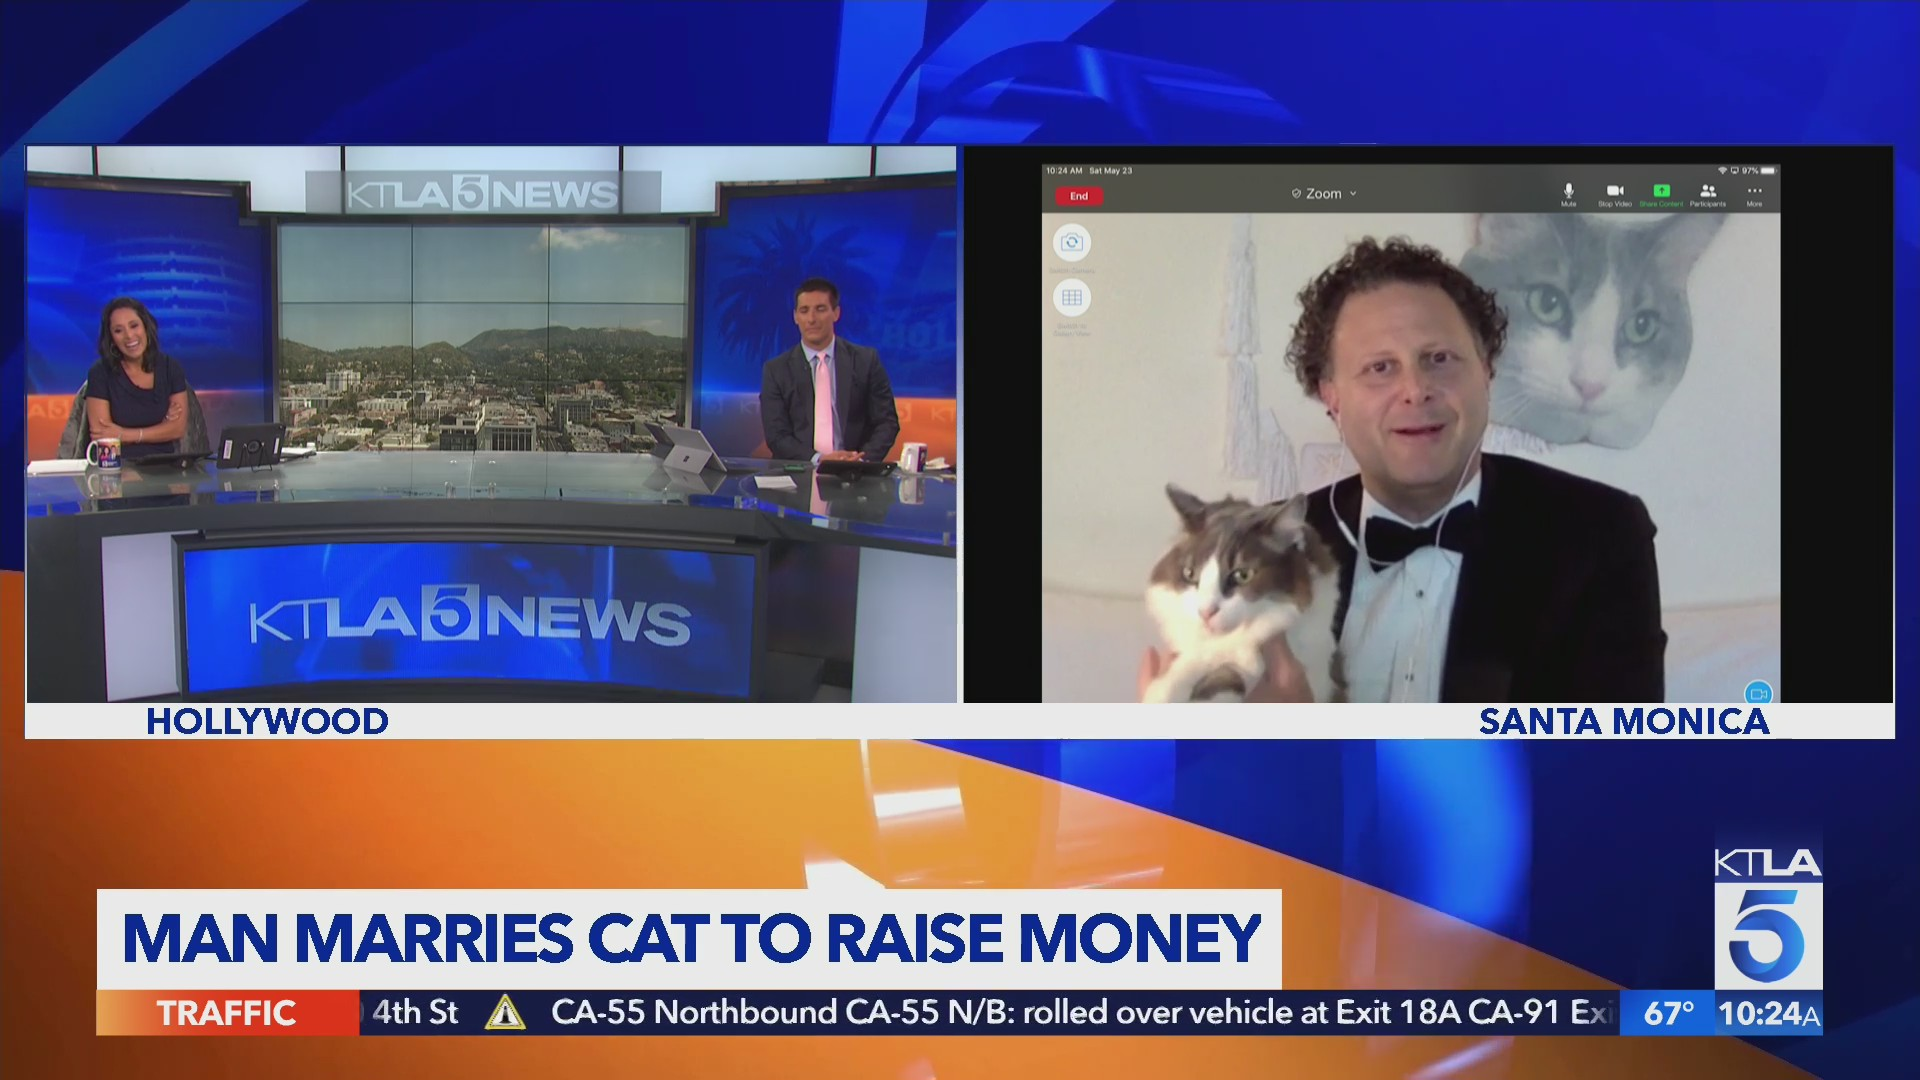 Man marries cat to raise money